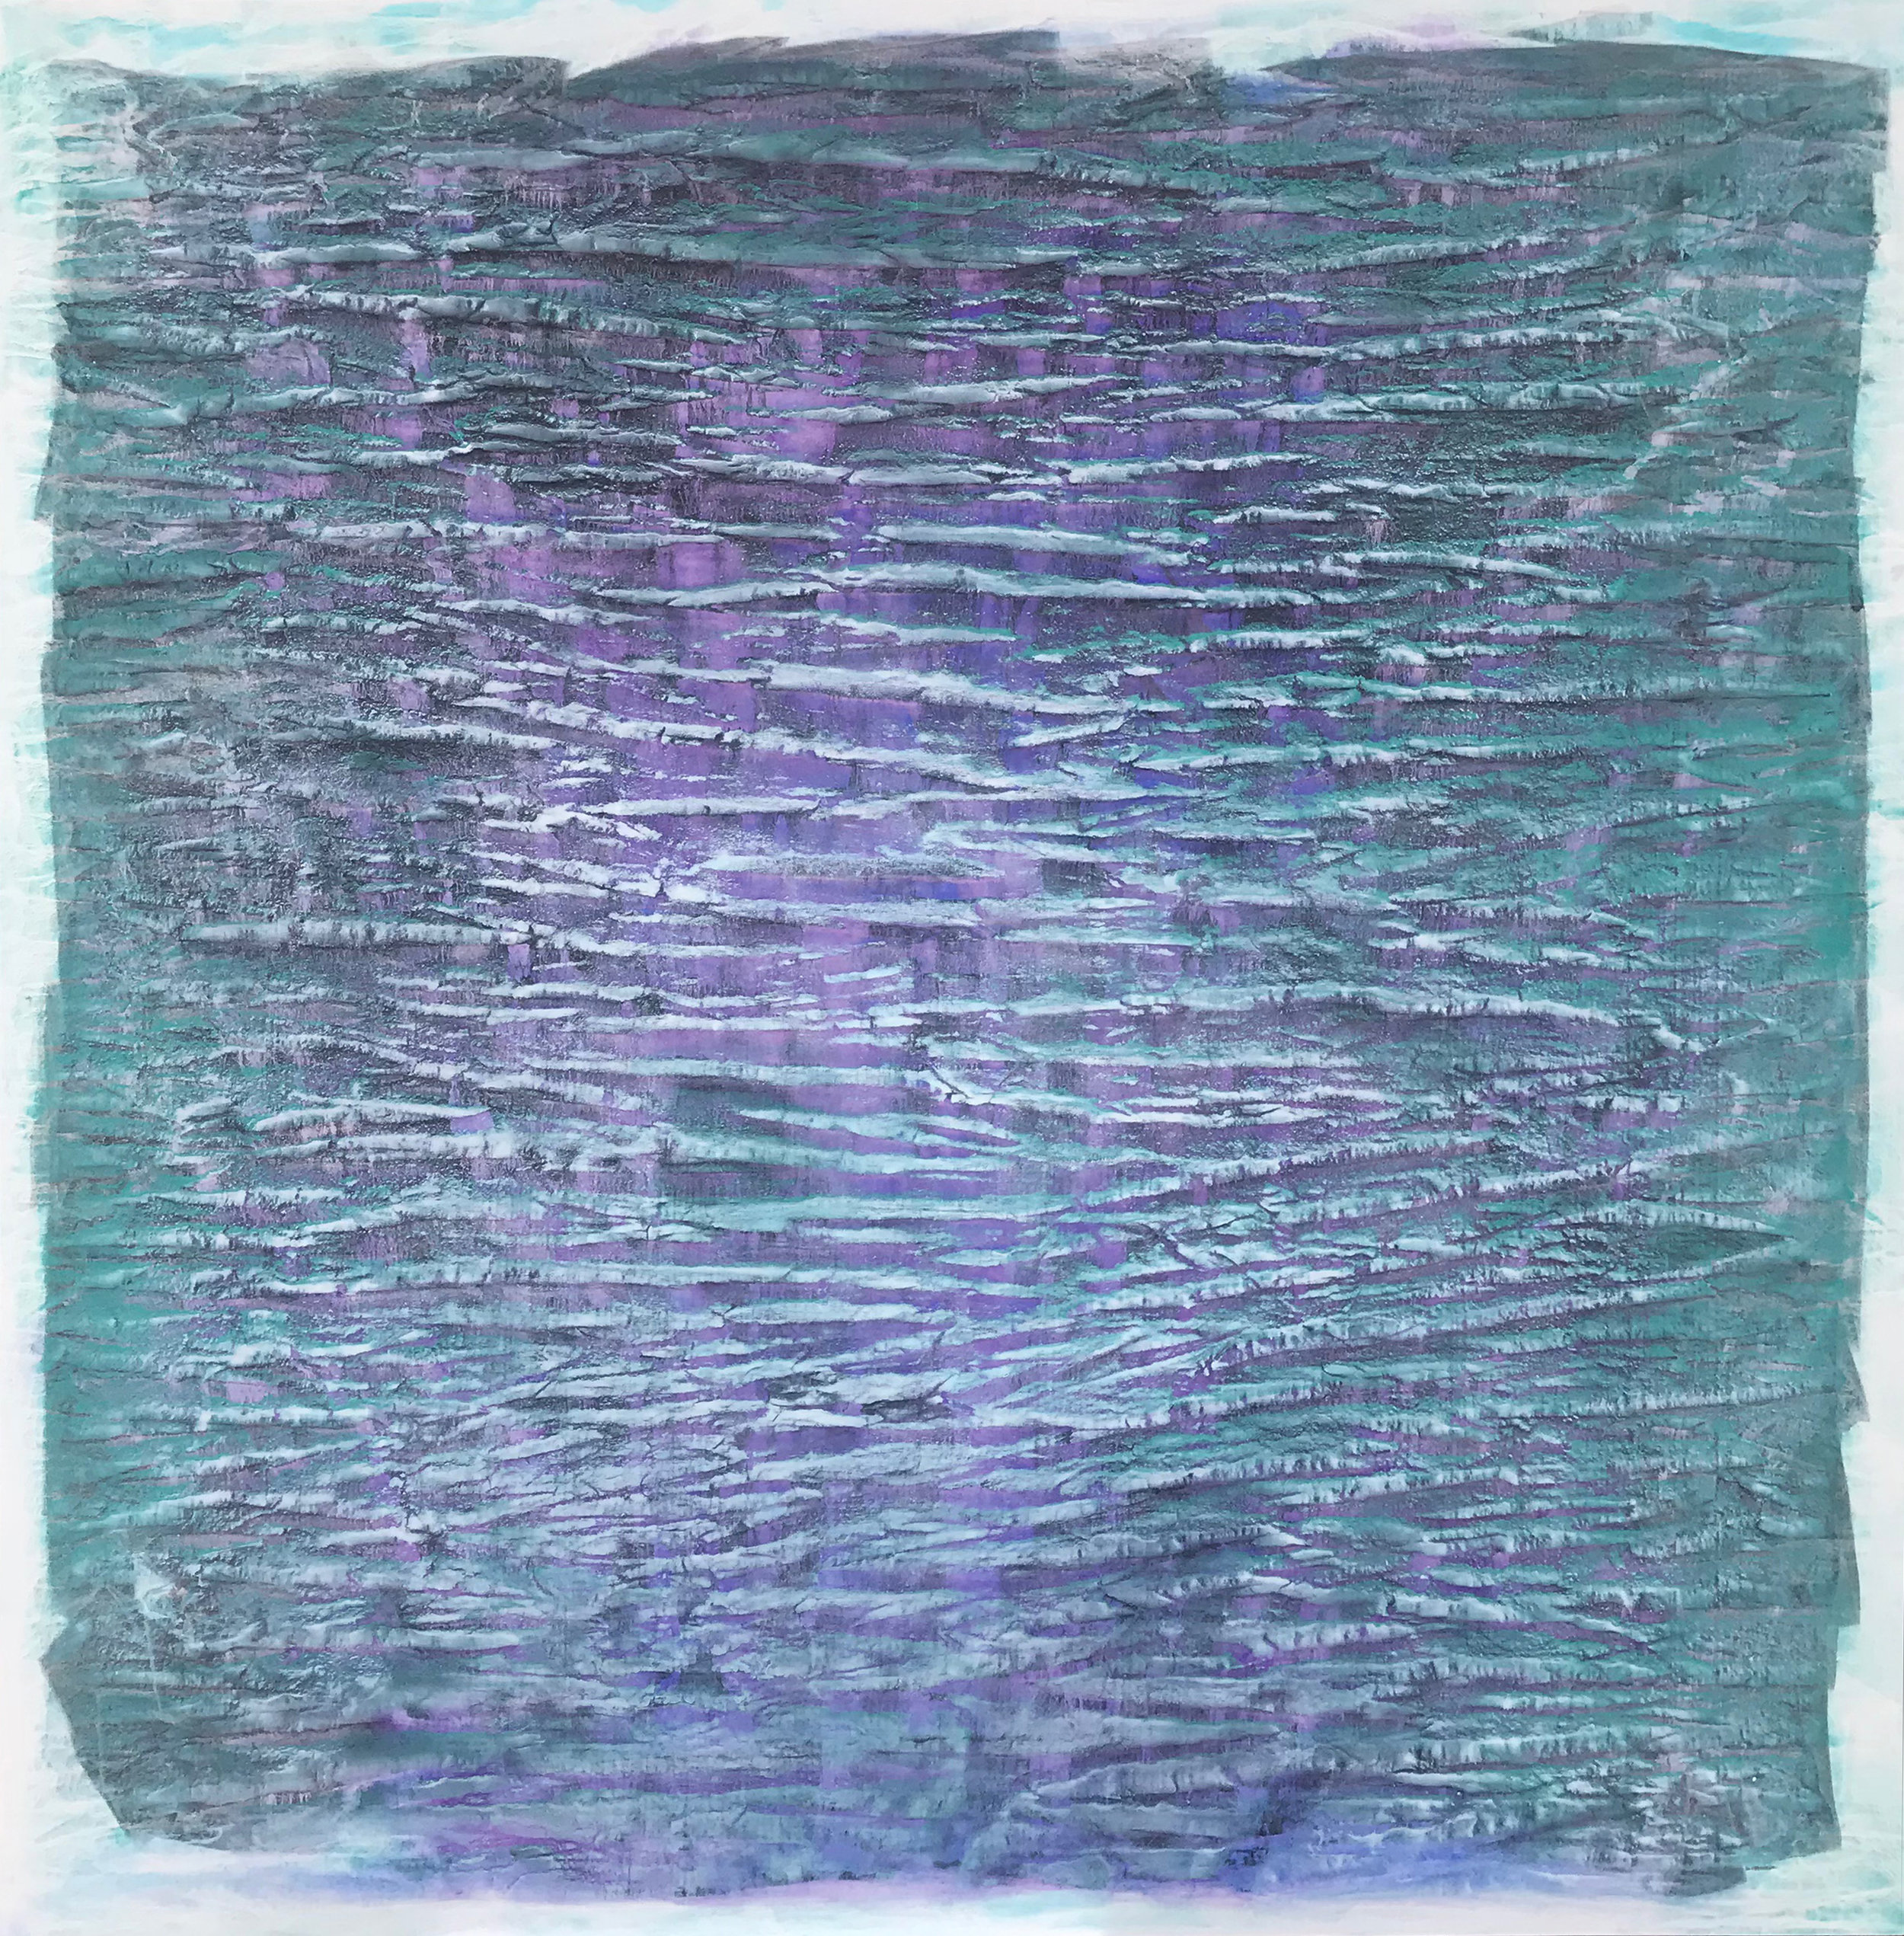 "2017 ""Water and Light"" #1387 pigment, oil paint, alkyd on canvas (Cobalt Violet Brilliant Dark - Cobalt Turquoise Light - Mars Black - Cobalt Green Bluish- R6 - Titanium White) 78"" x 78"" © Vicky Colombet, all rights reserved."